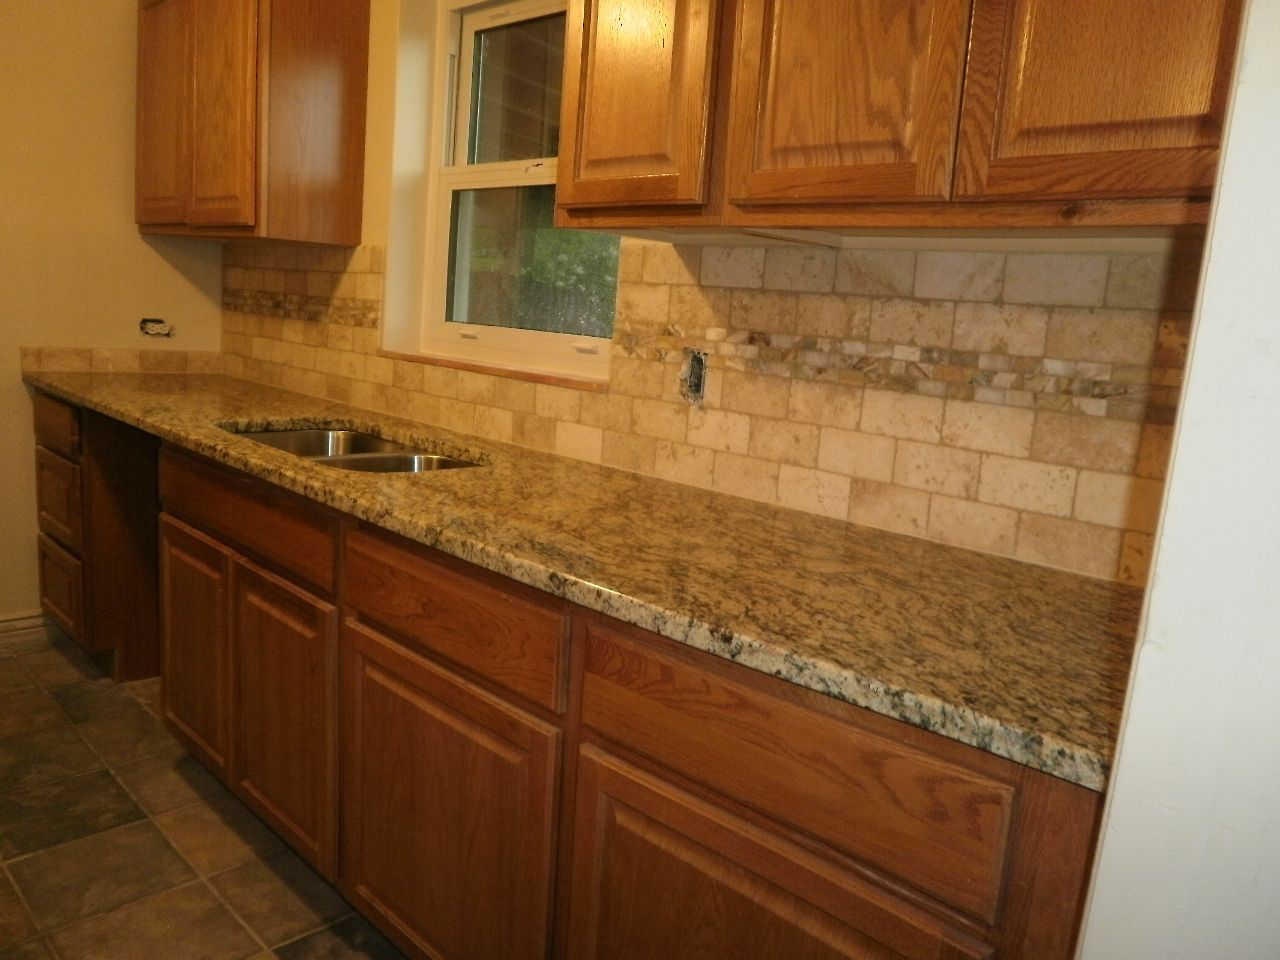 Kitchen Counter Tile Kitchen Backsplash Ideas Granite Countertops Backsplash Ideas